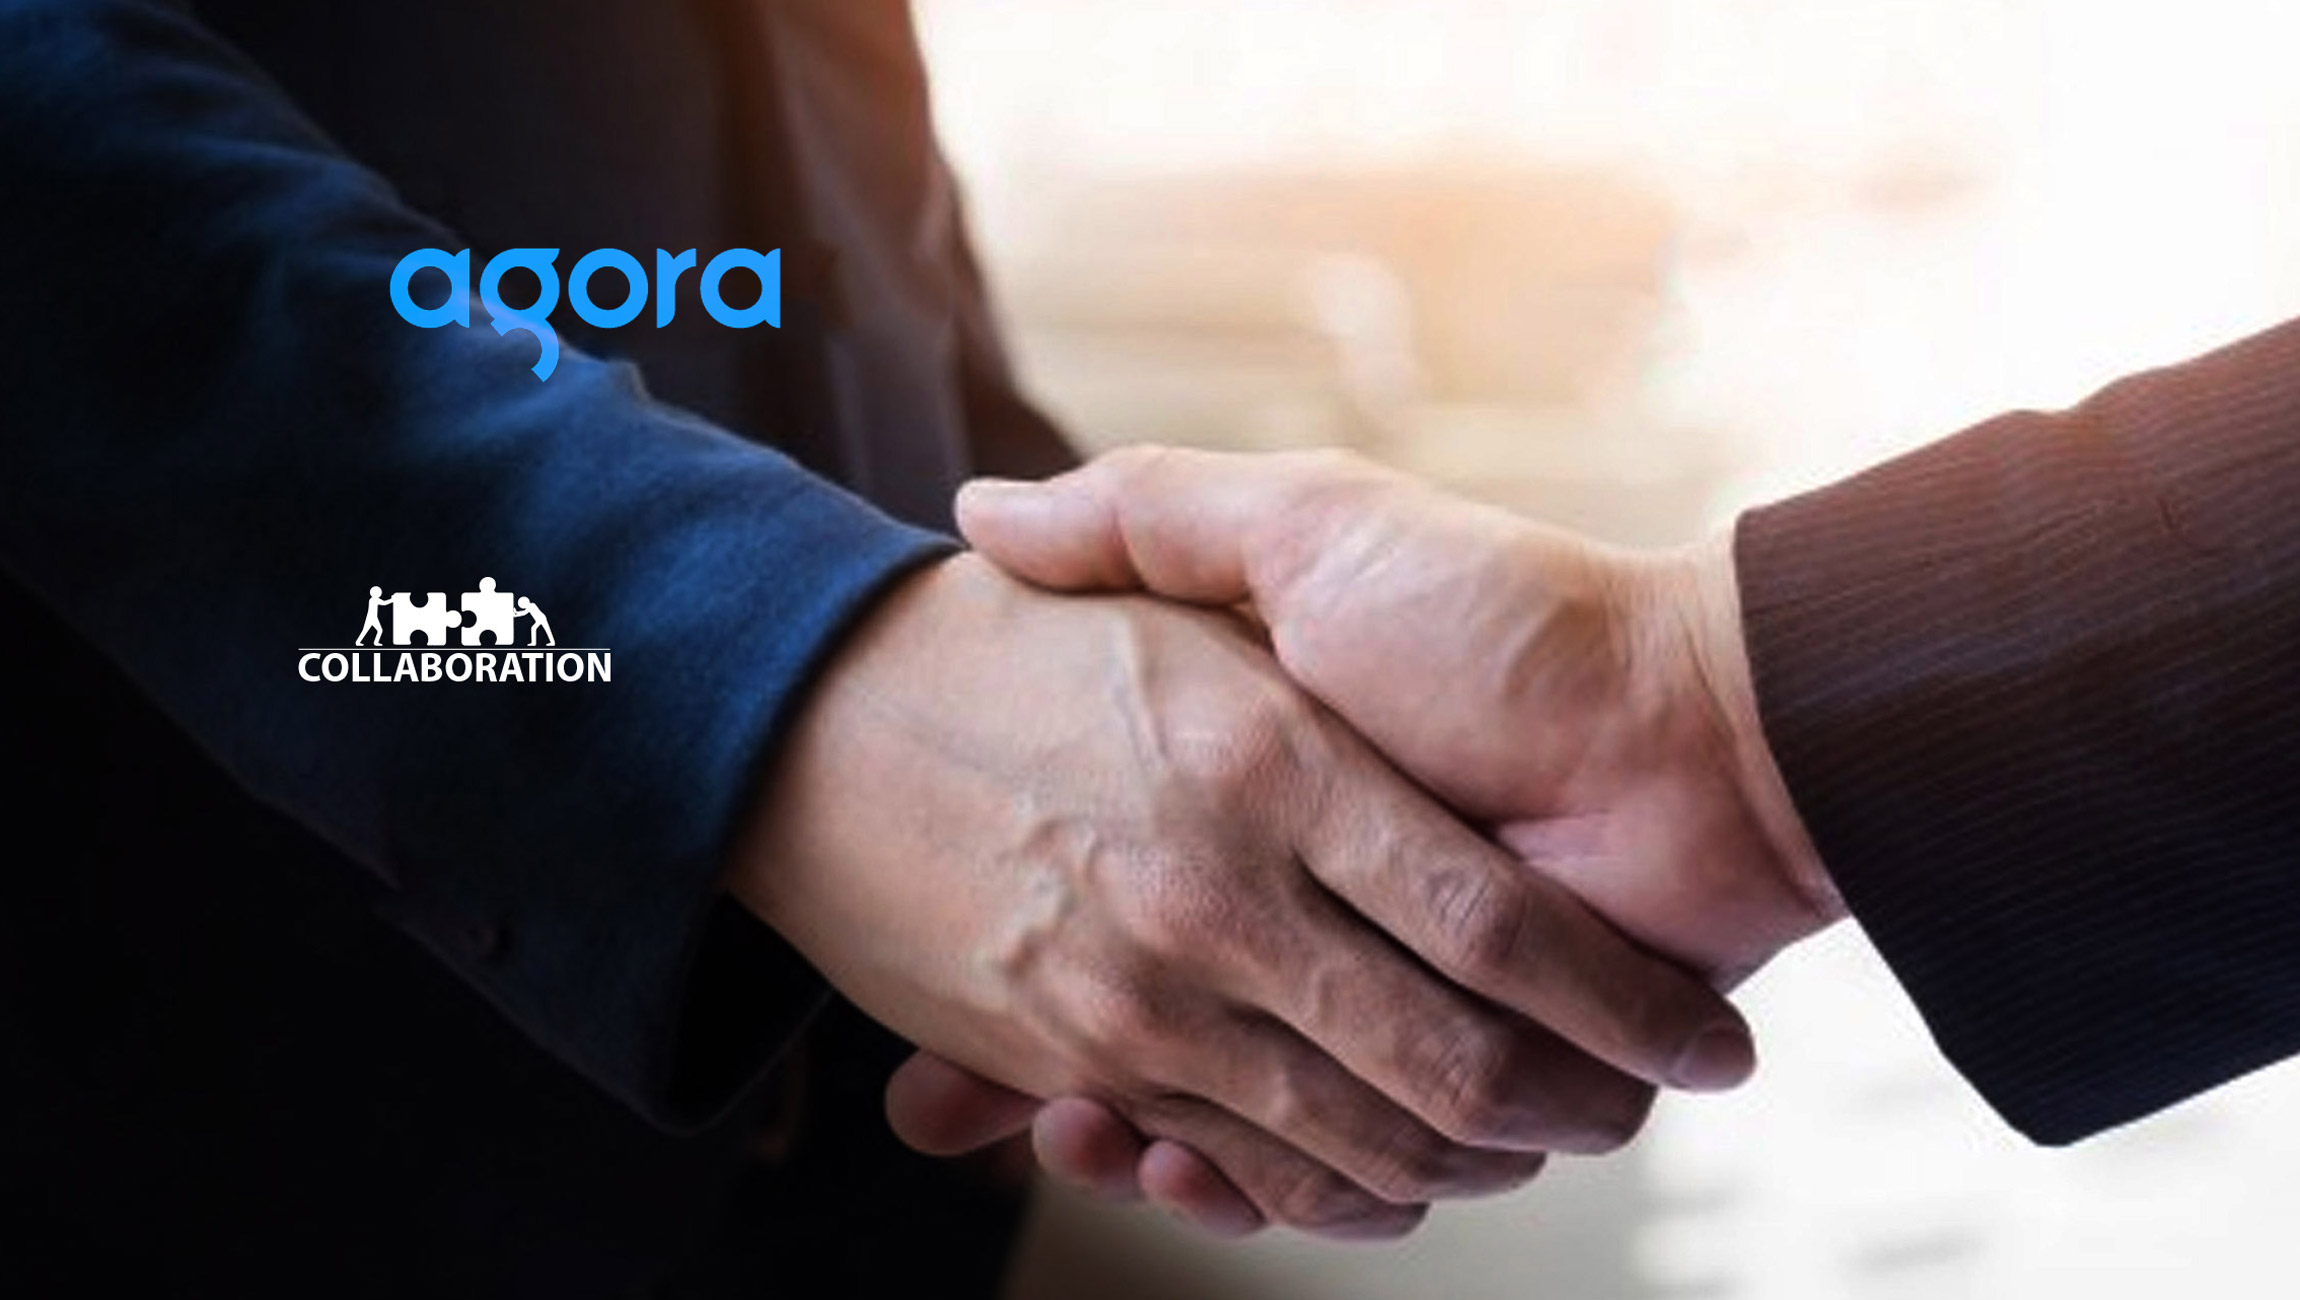 Scener and Agora Partner to Scale Watch Party Platform After Seeing 100x Growth